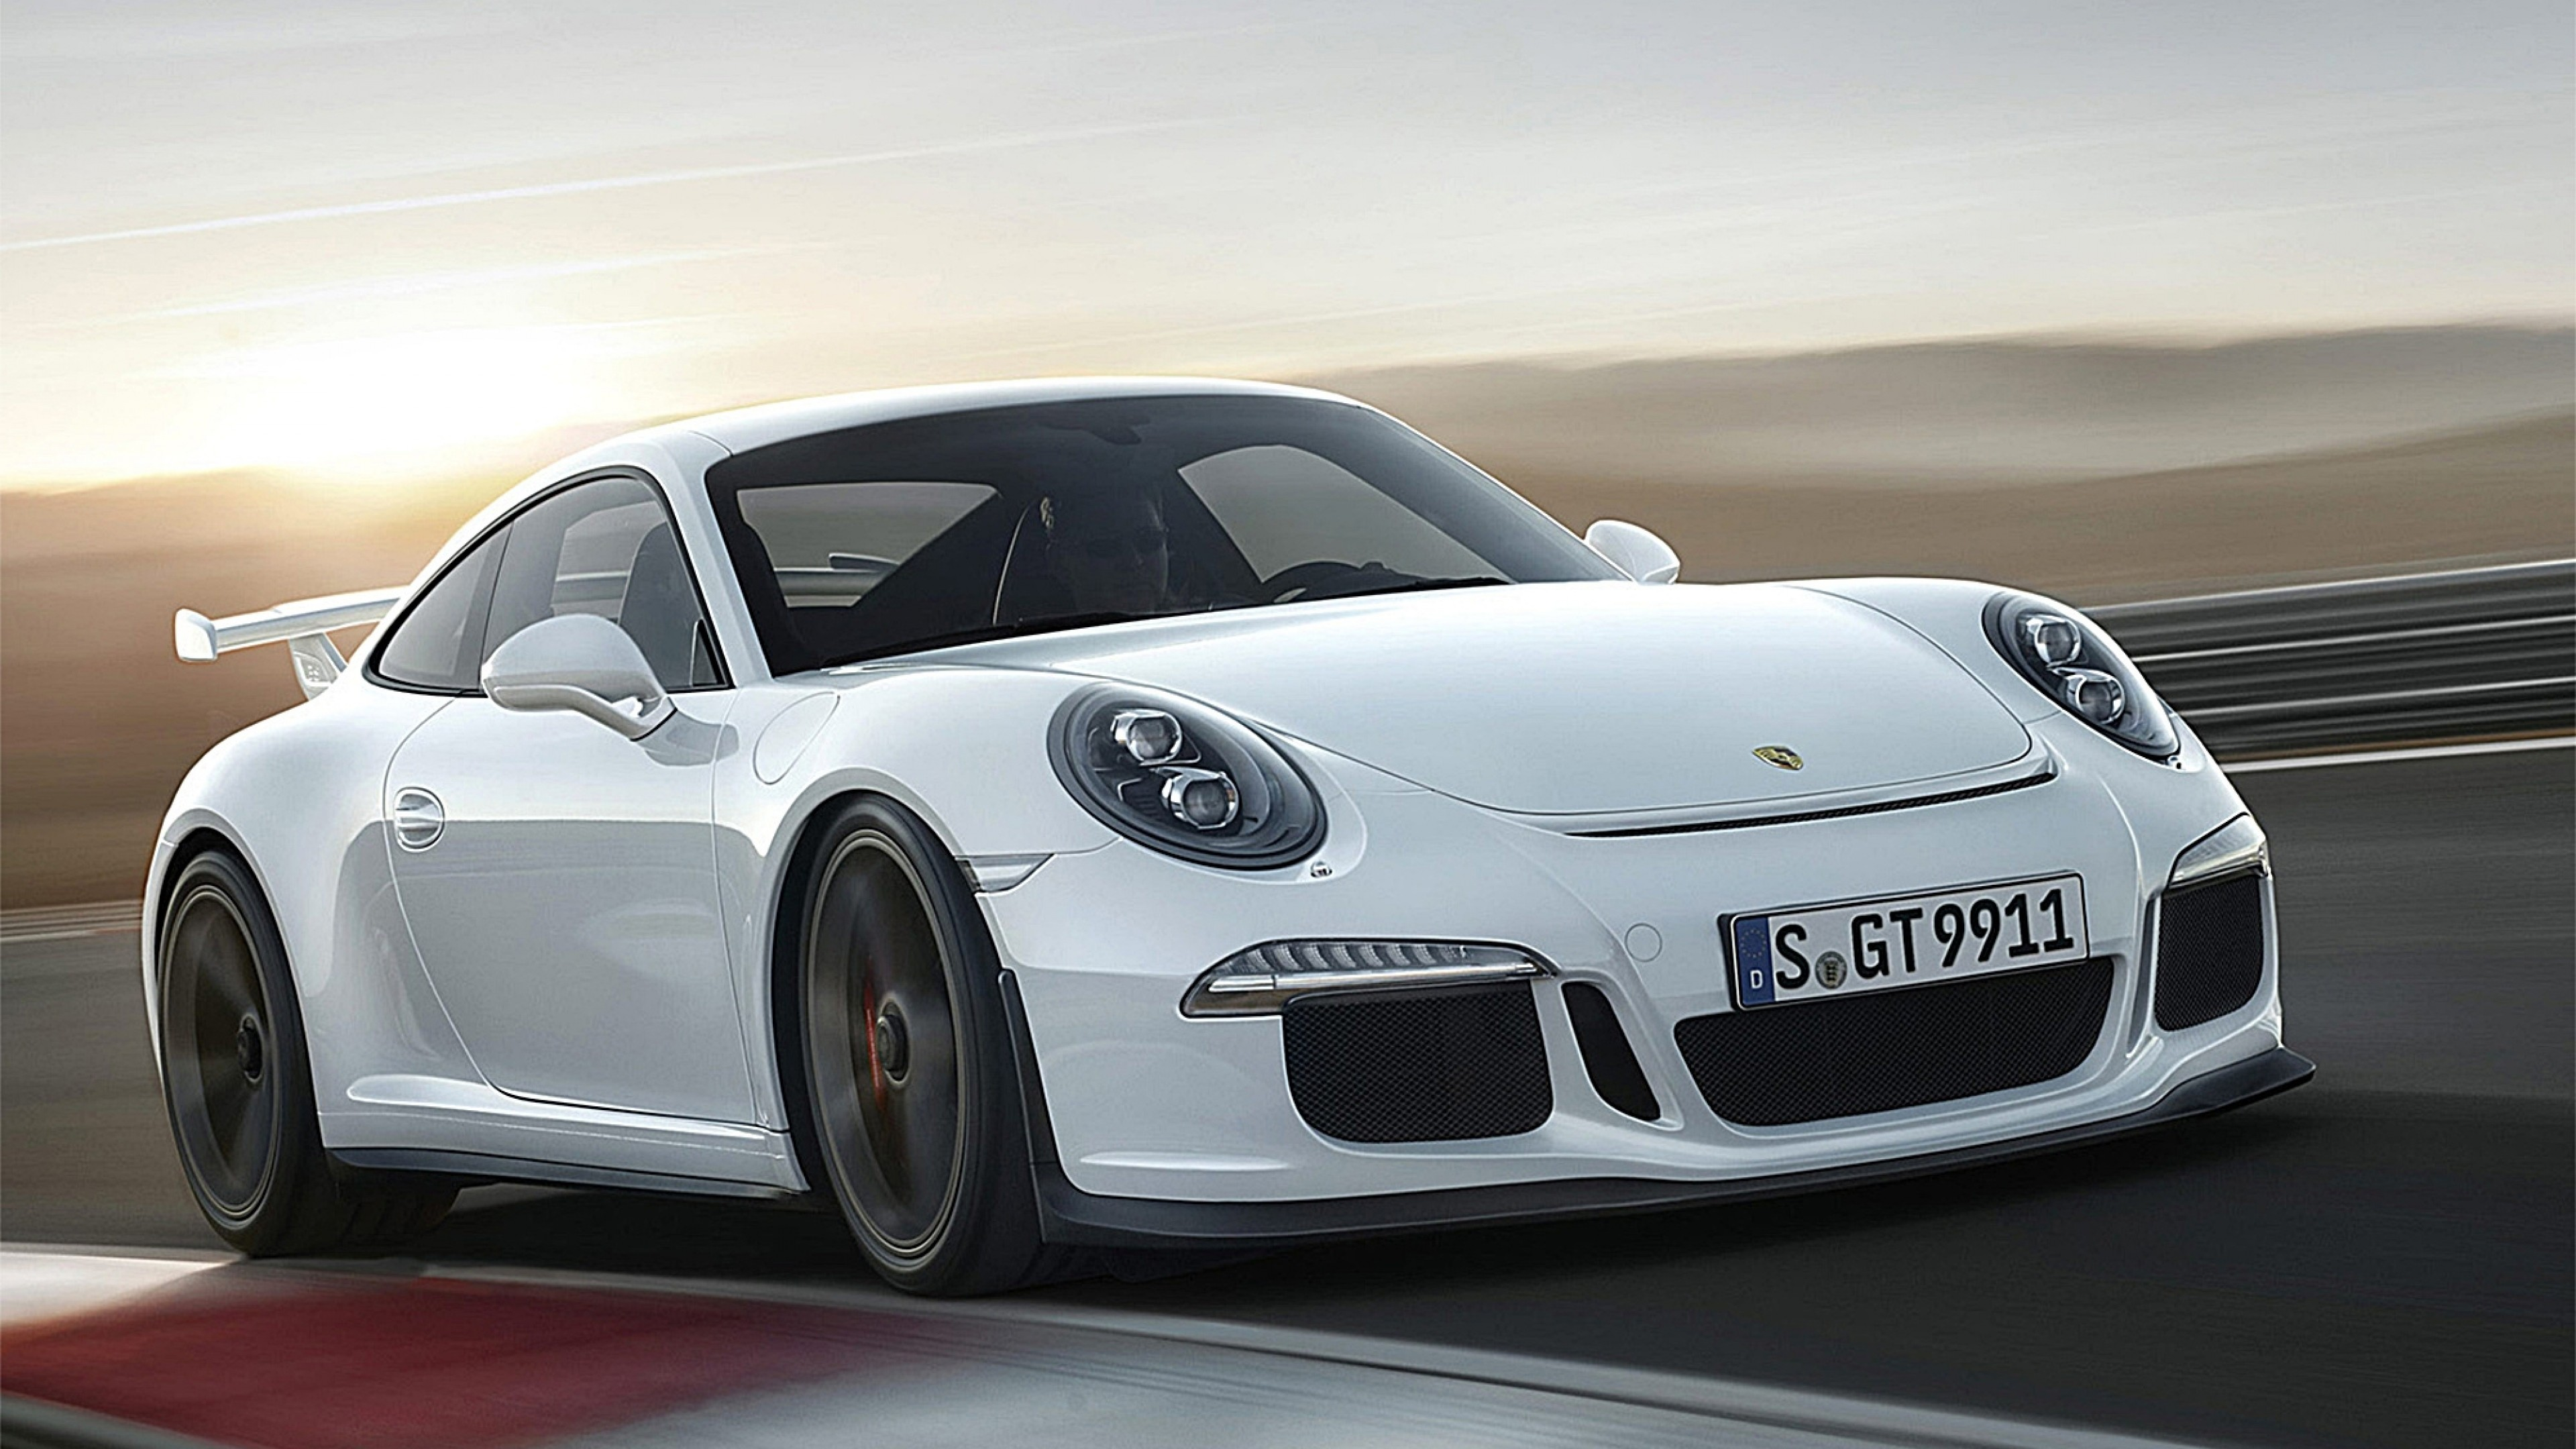 3840x2160 Preview wallpaper porsche 911 gt3, auto, car, cars